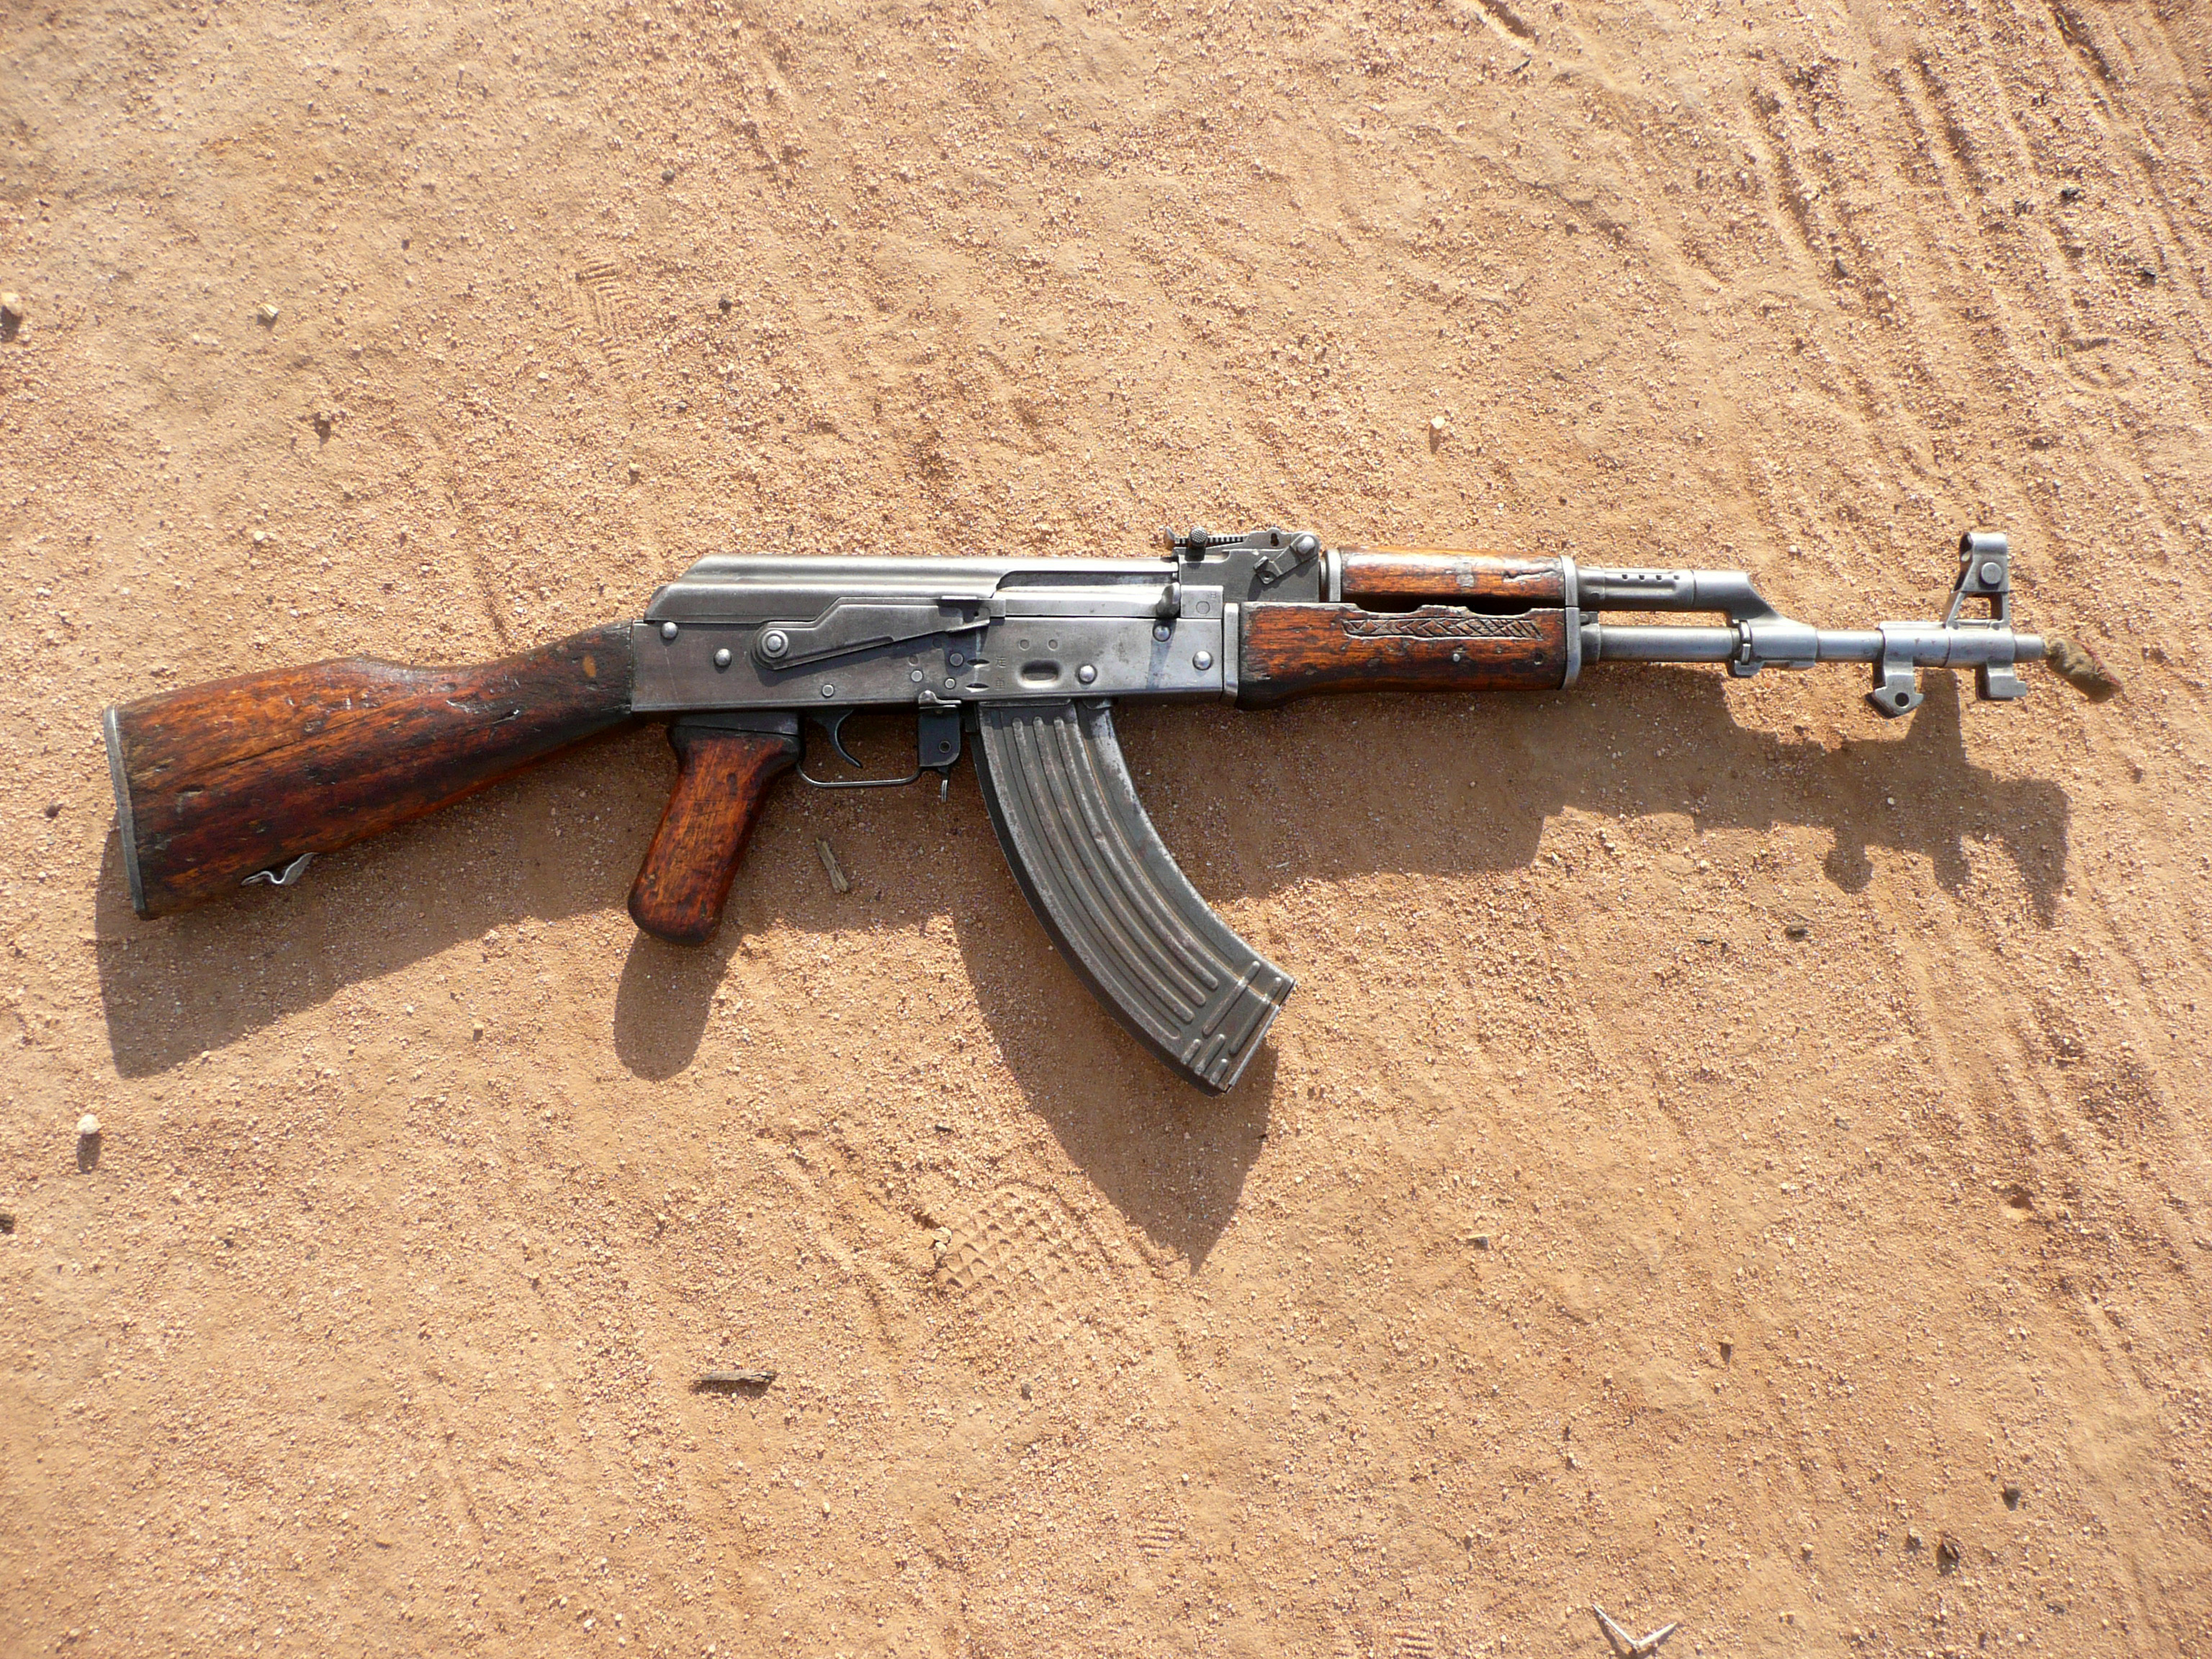 AK-47s are commonplace in Karamoja